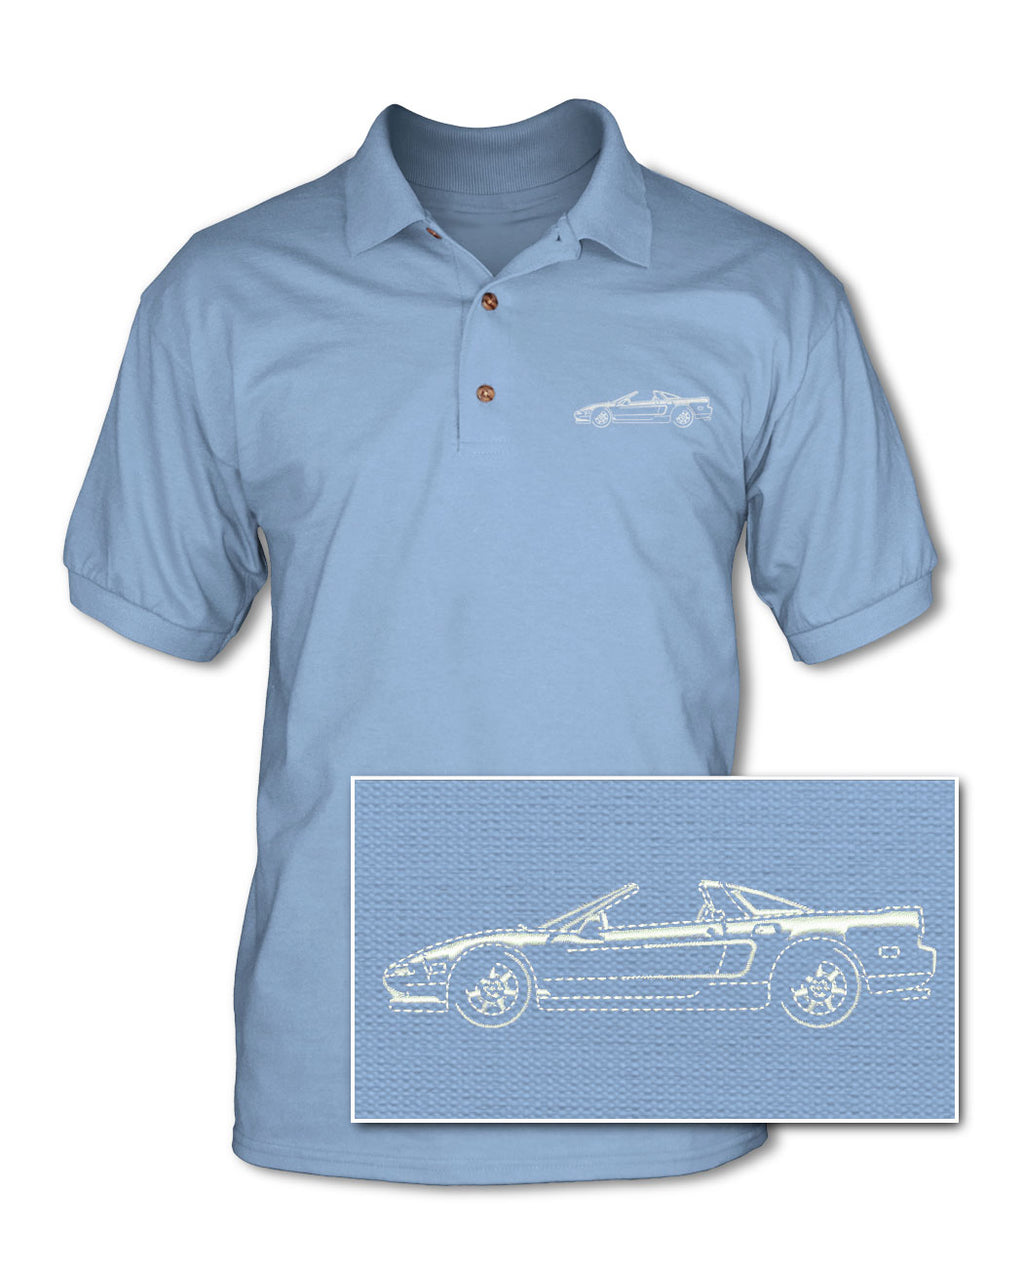 Honda Acura NSX Top Off 1990 - 2005 Adult Pique Polo Shirt - Side View